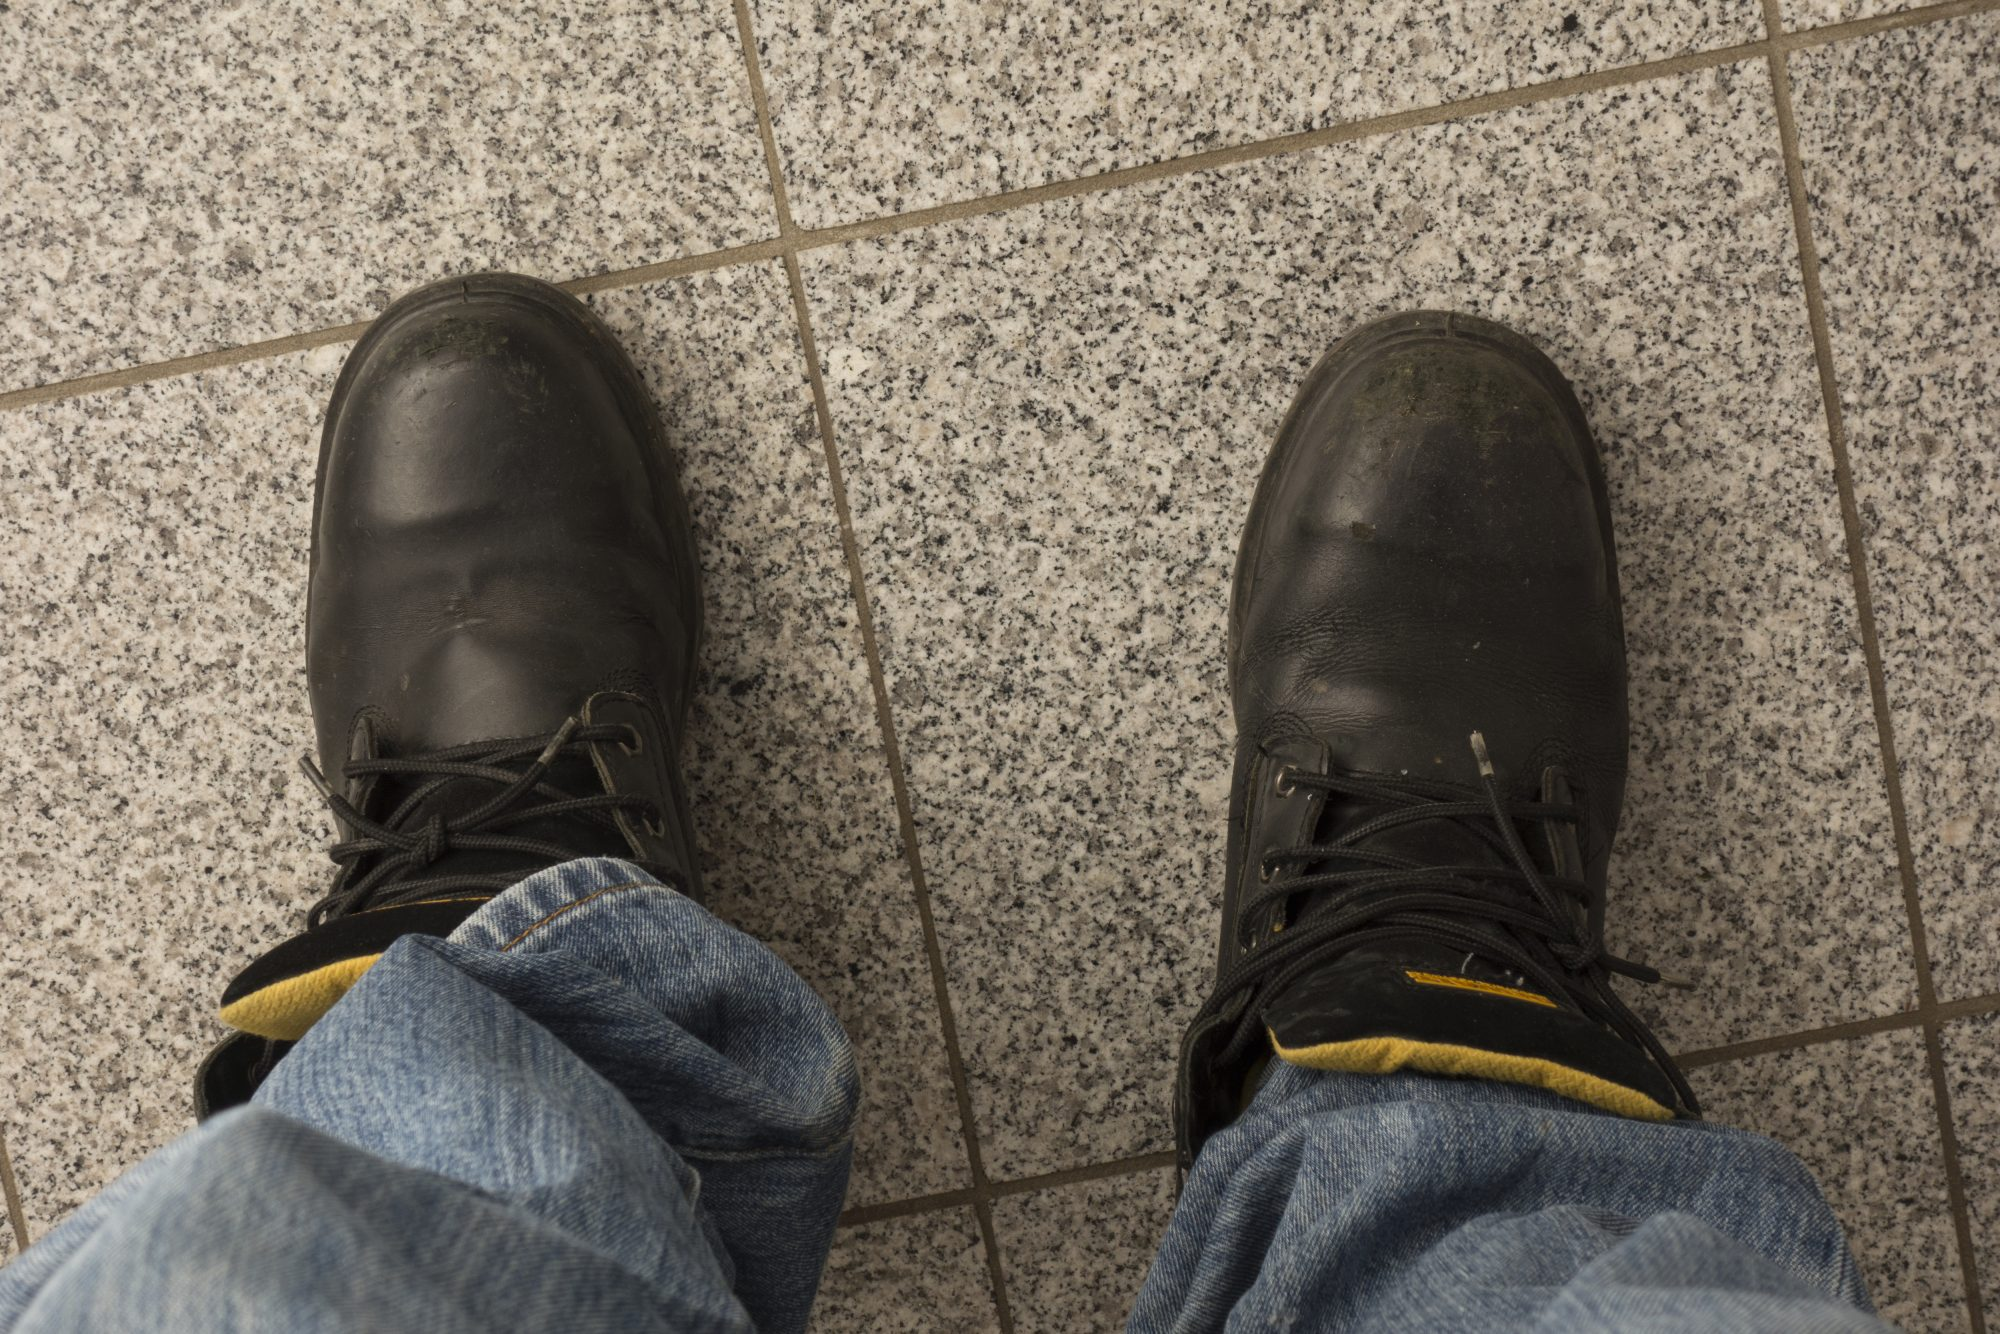 Close Up of Man's Shoes